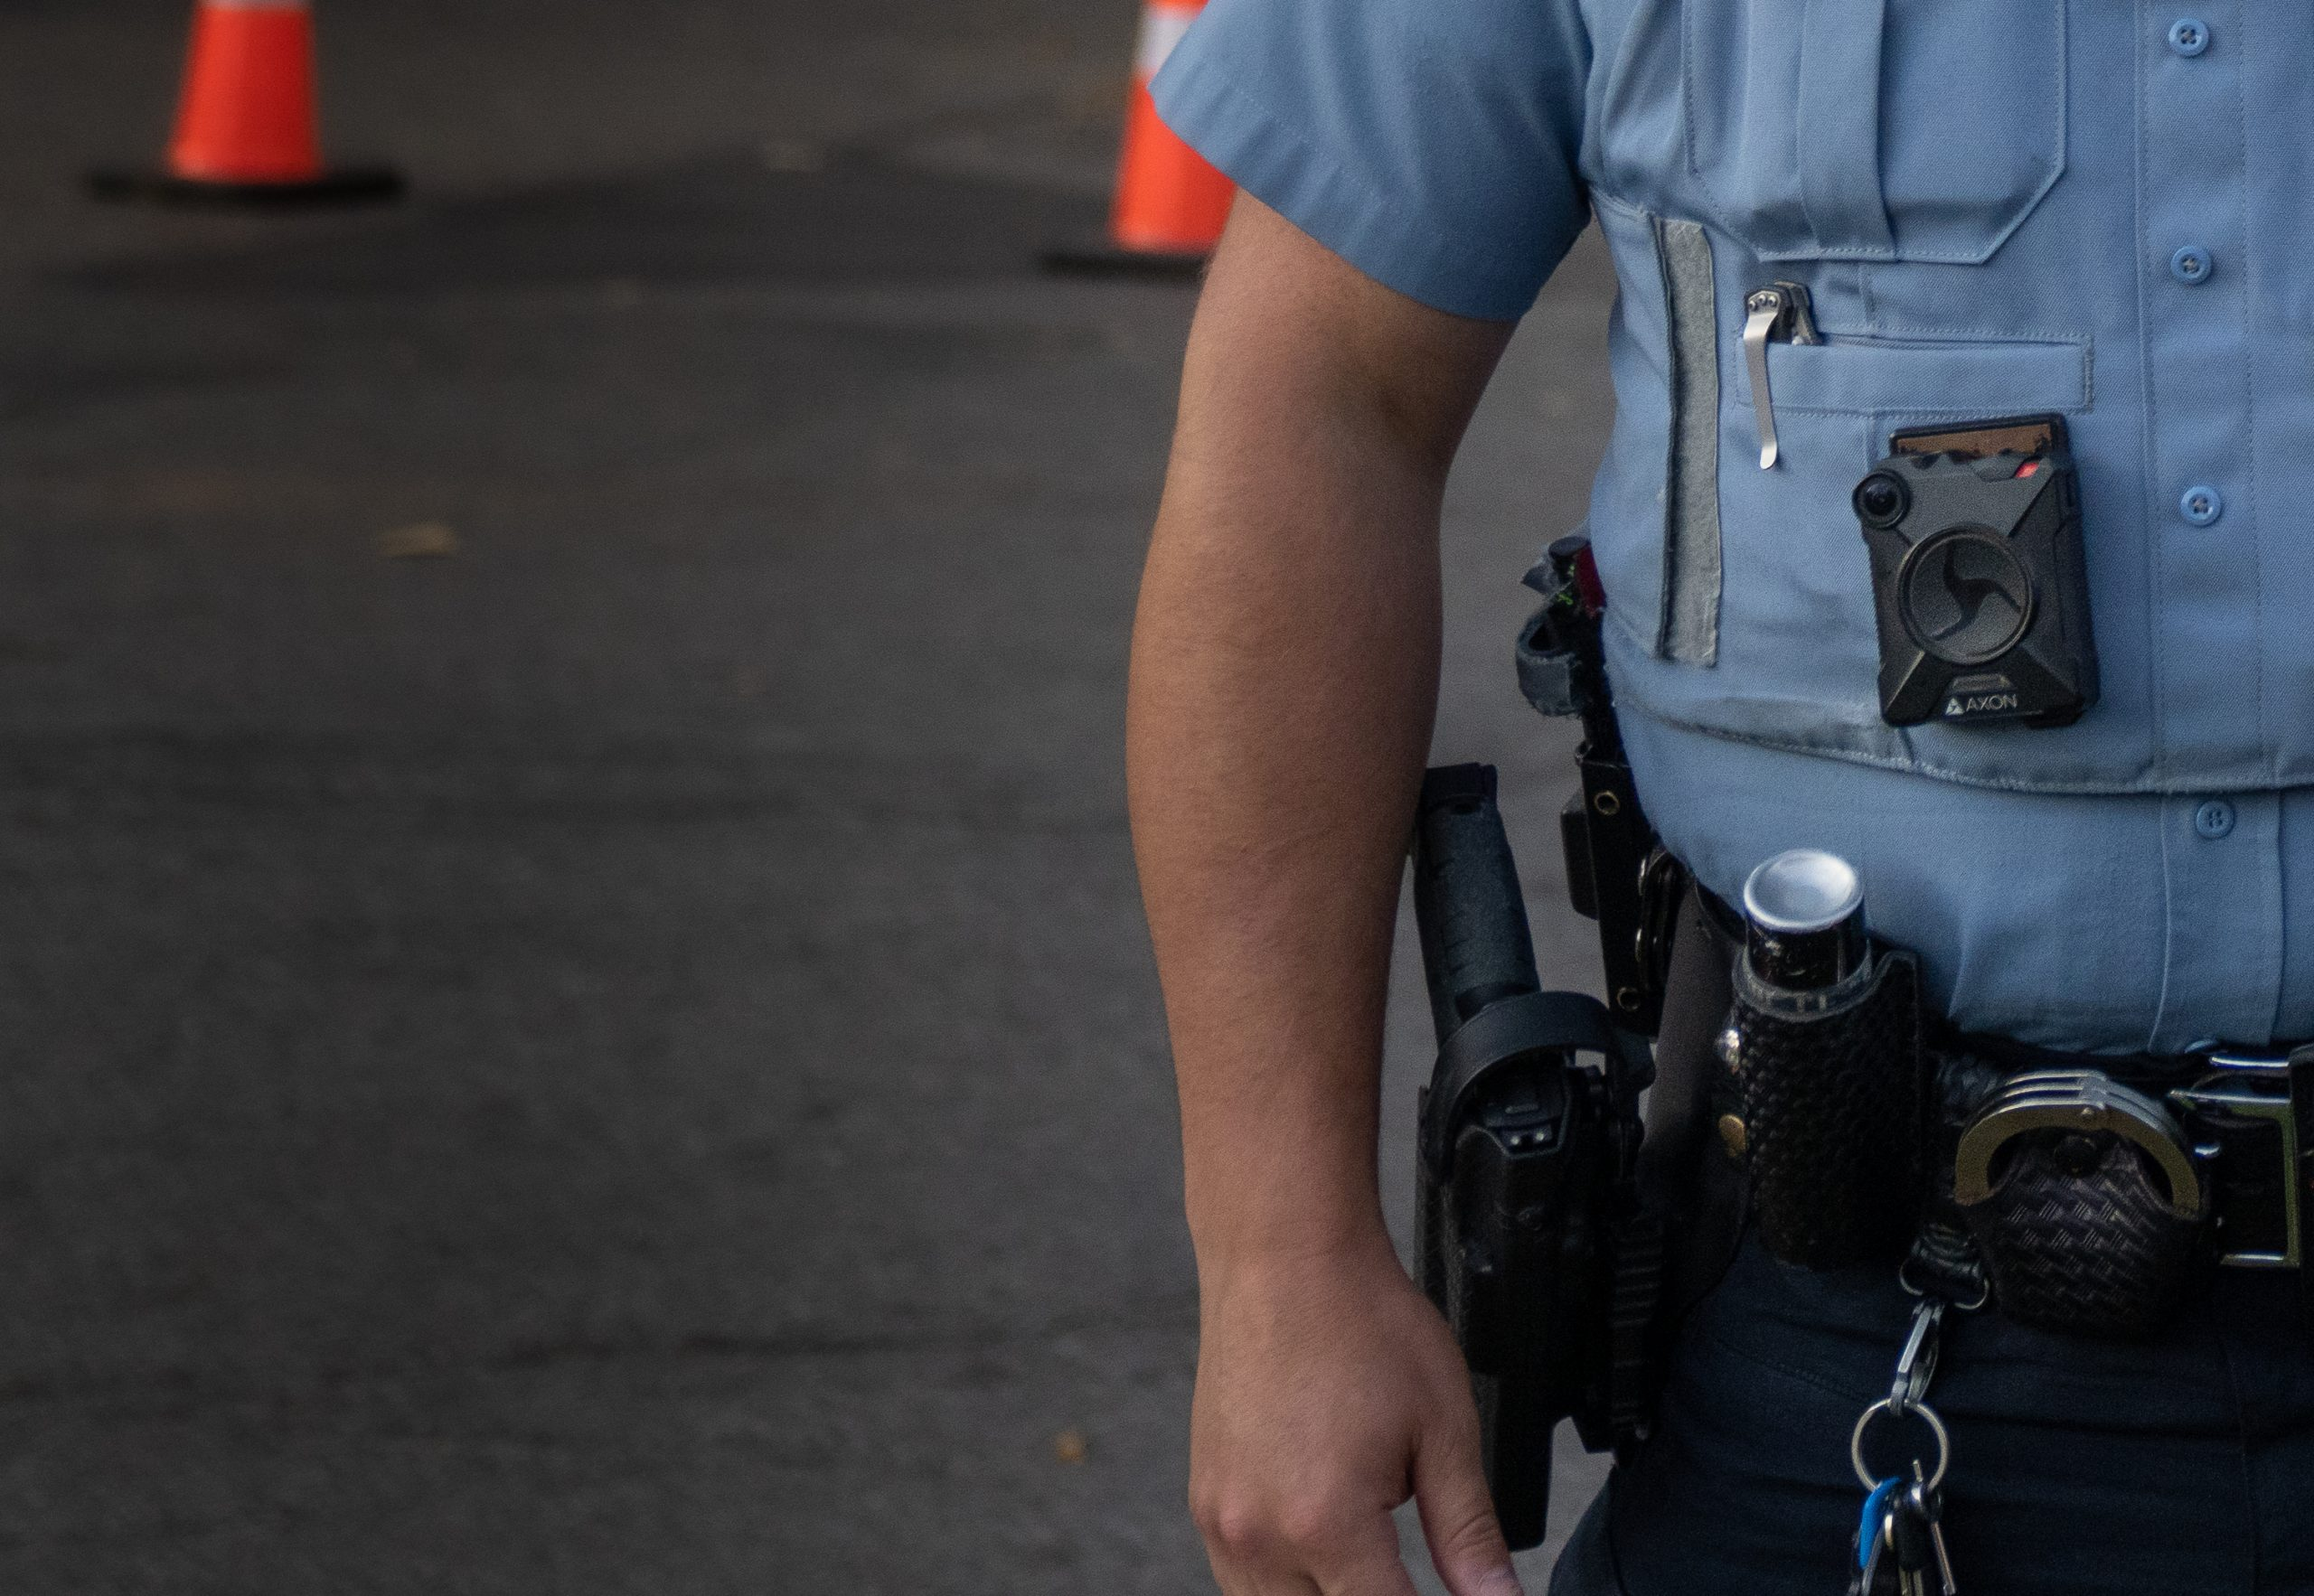 The Case Against Bodycams